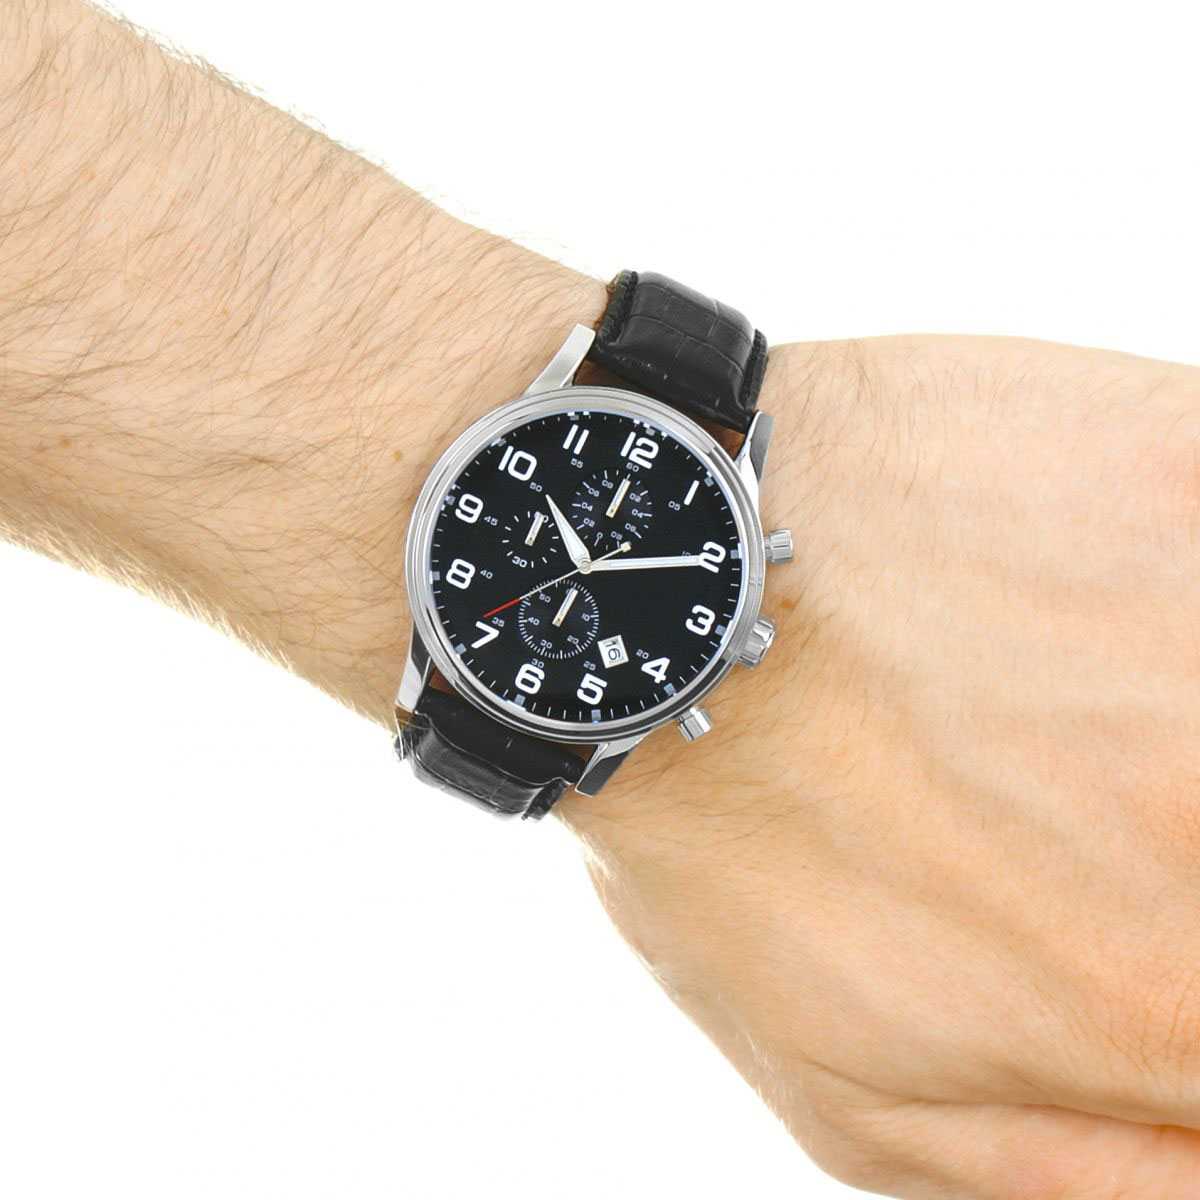 Chronograph Watch Men CM-8025 Customize Watch Top One Watch Manufacturer of Chronograph China